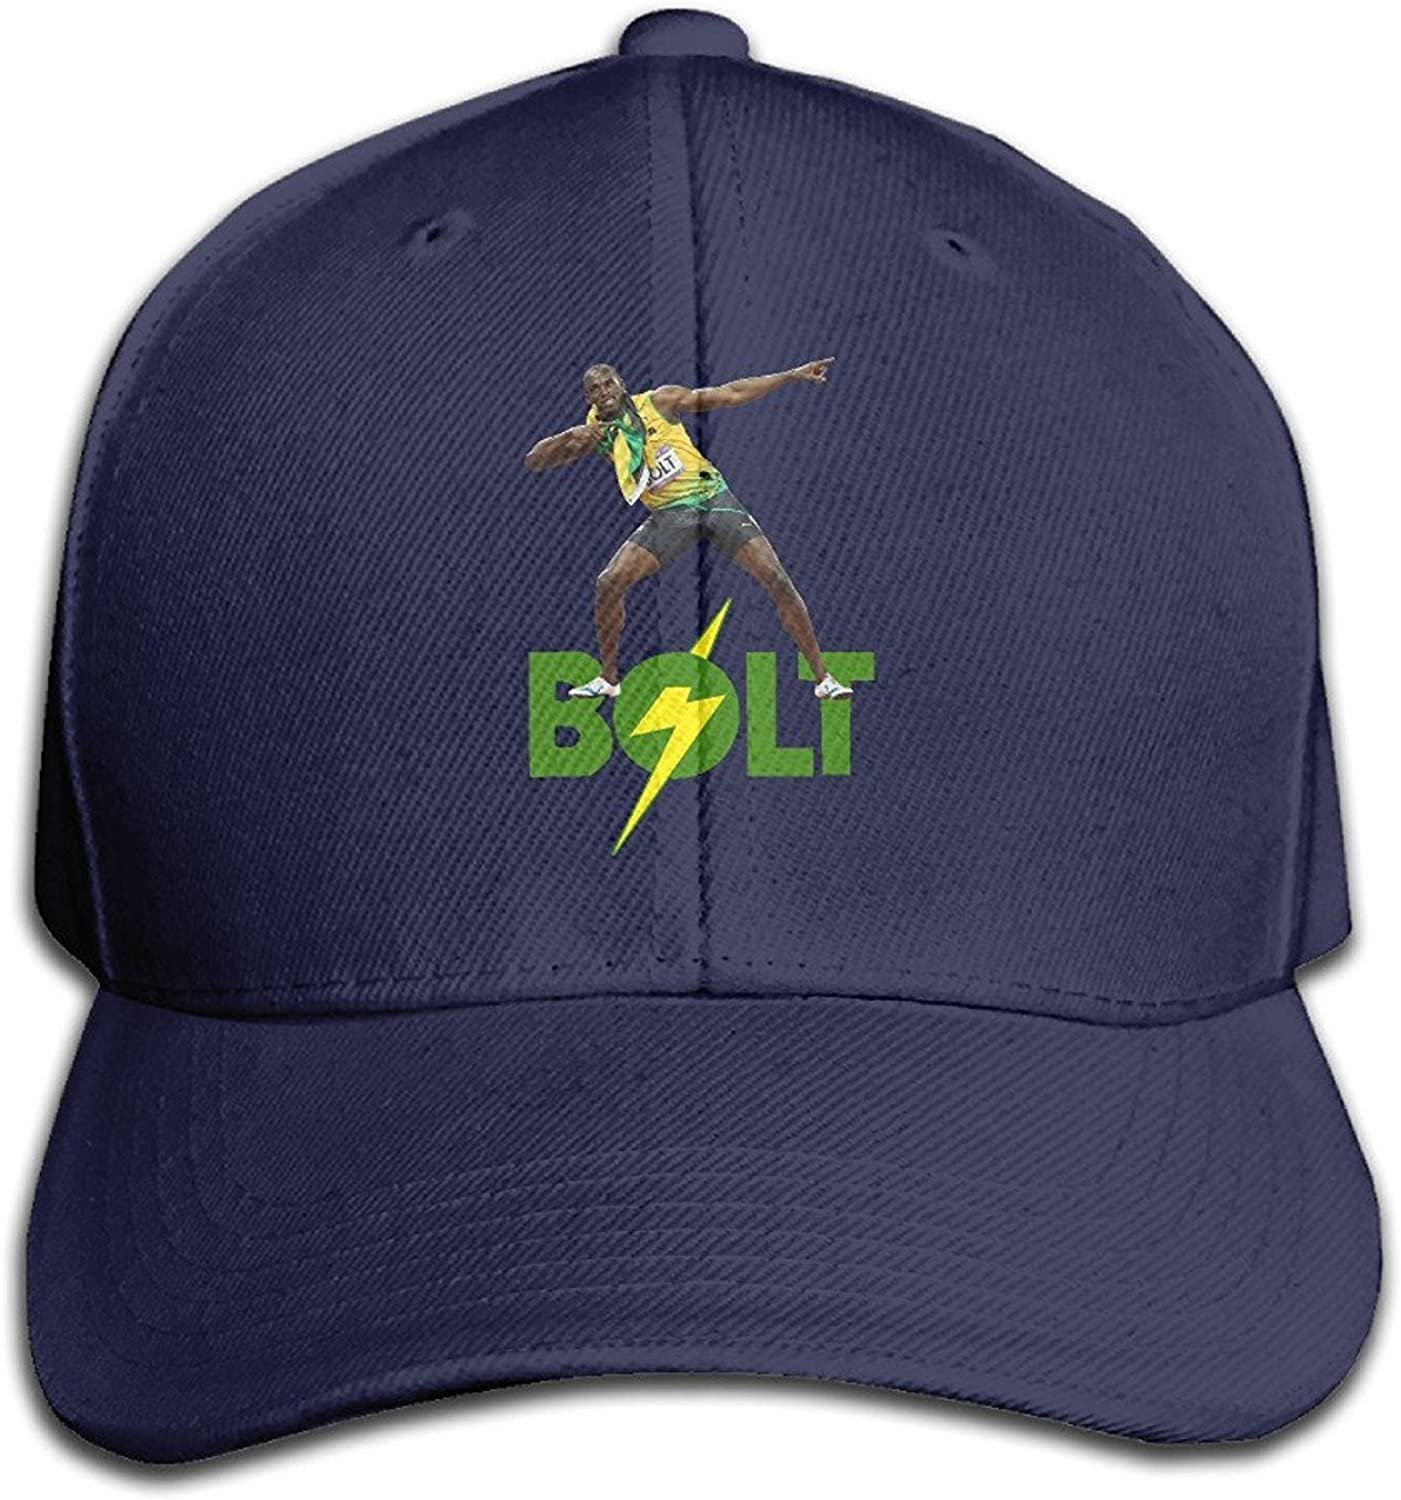 Usain Bolt Baseball Hat